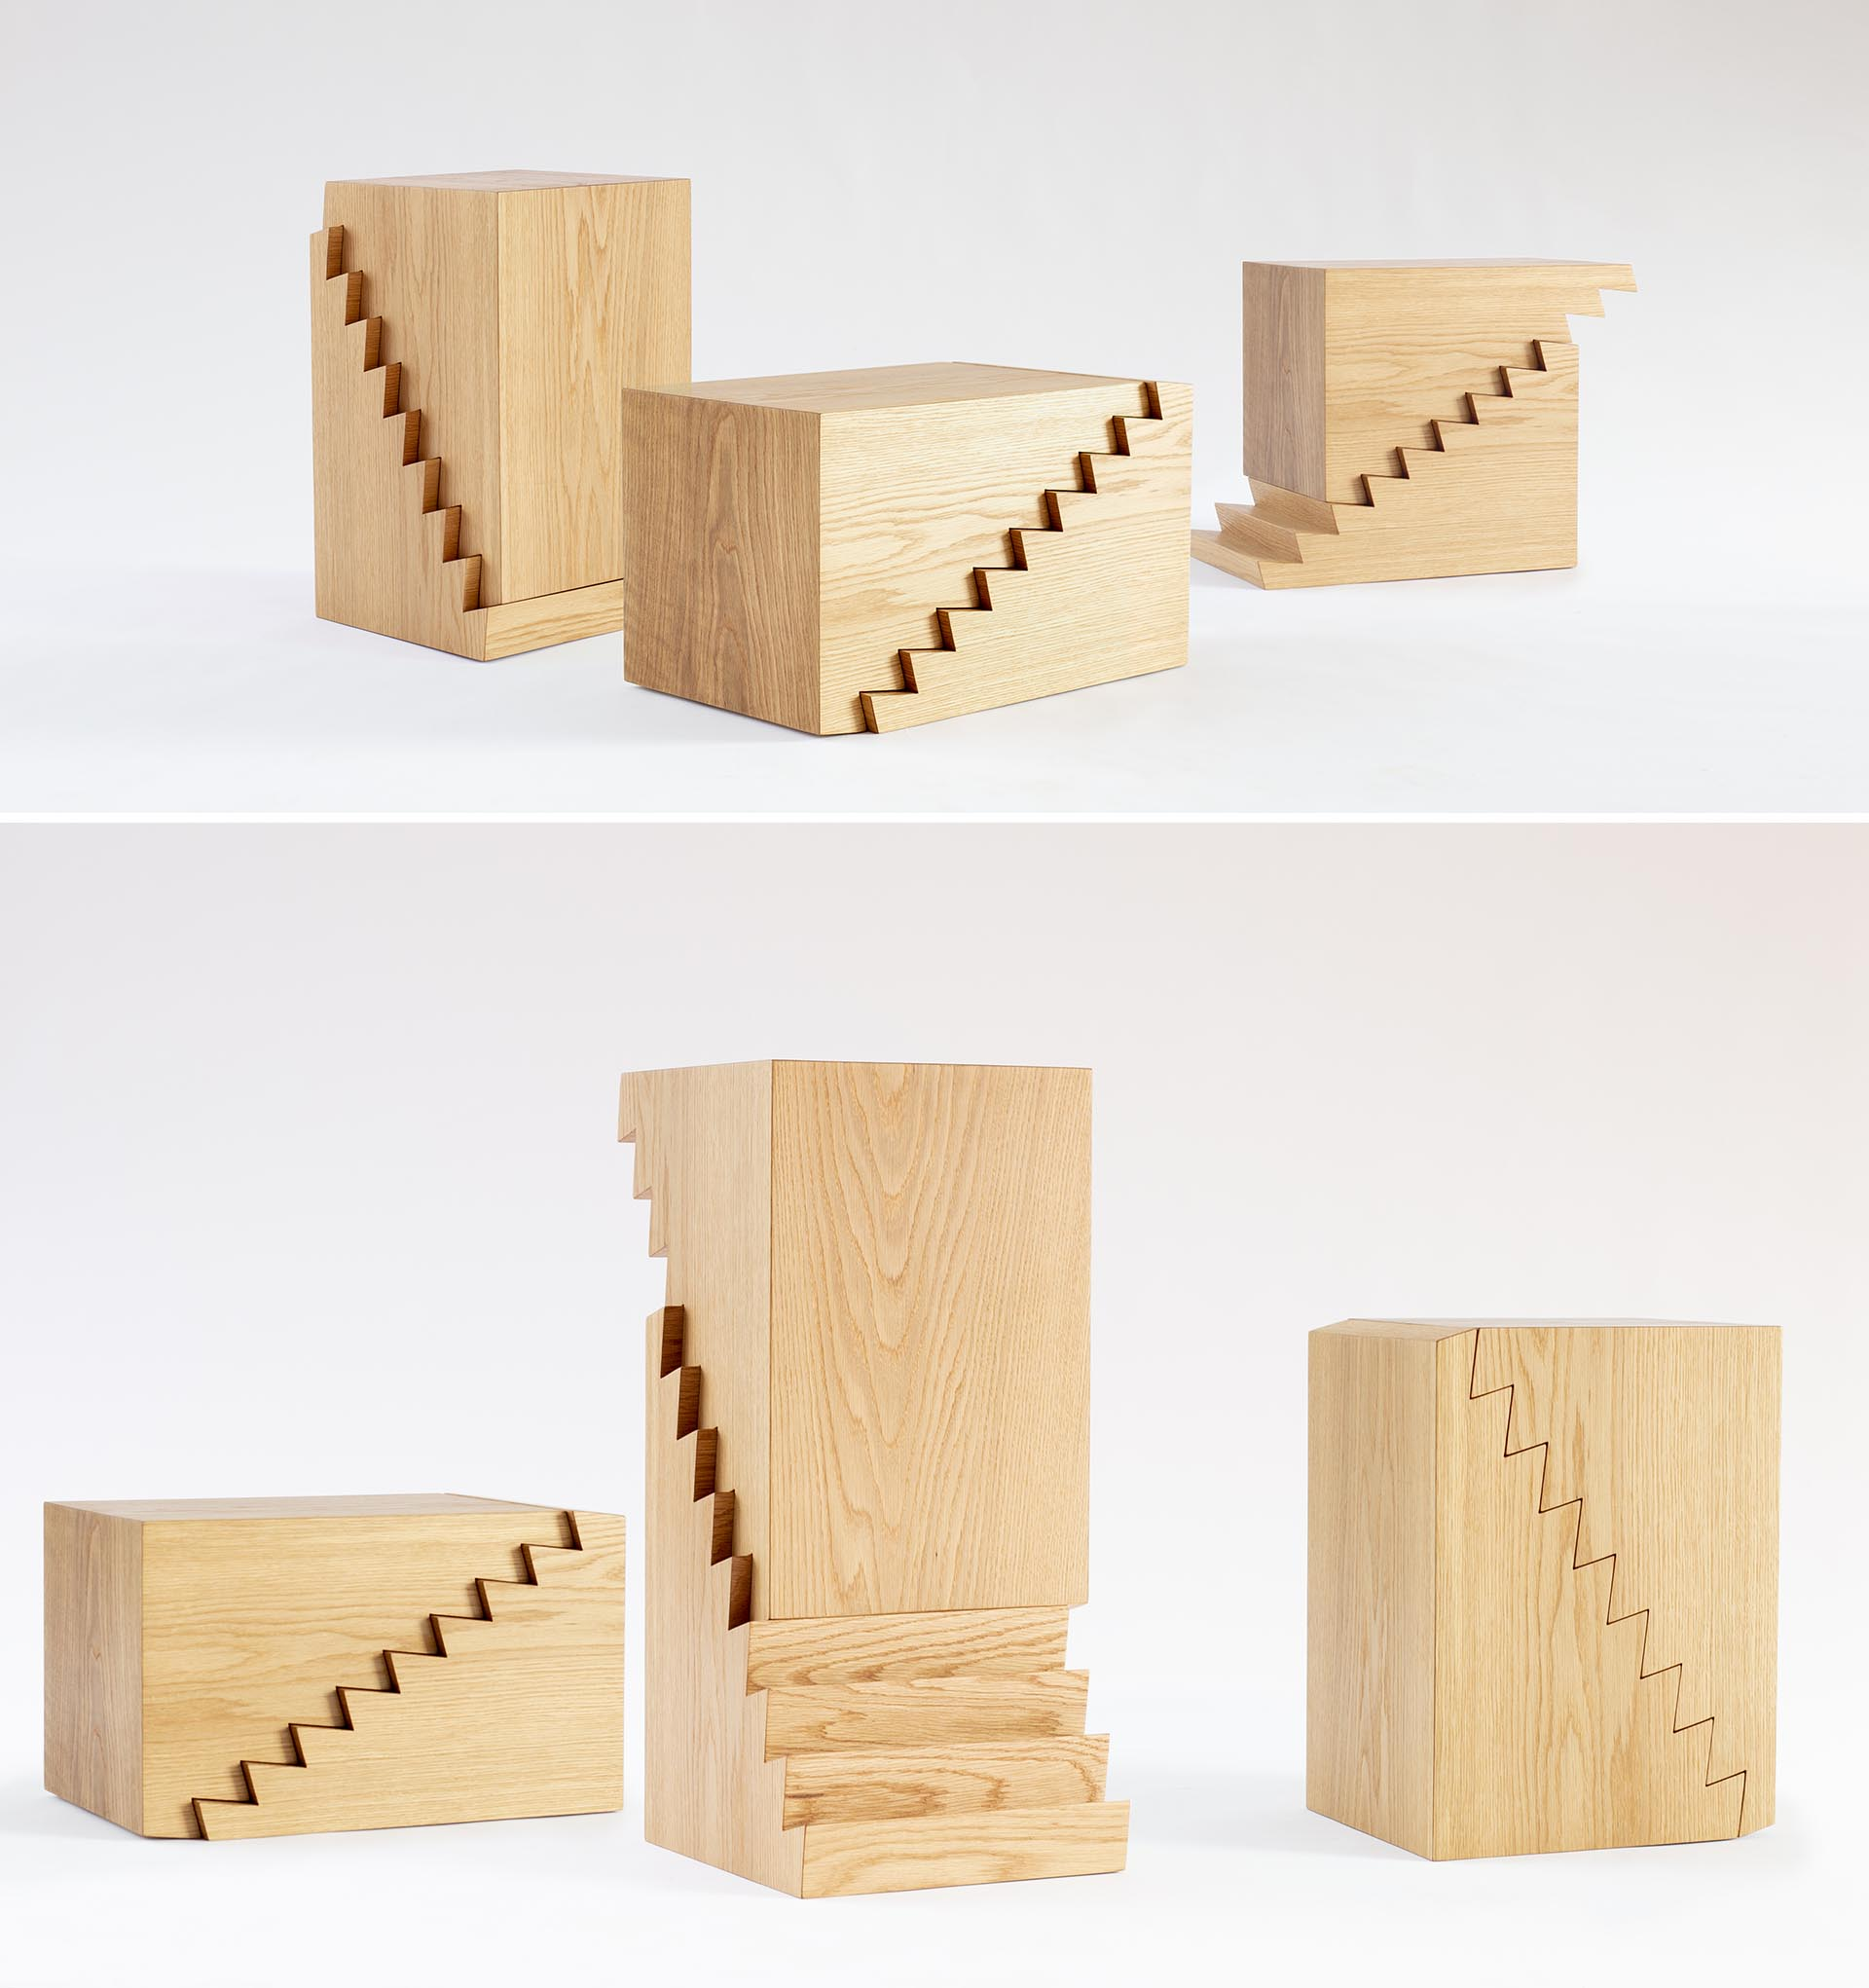 A modern wood side table with a saw-tooth design, that can also double as a stool or laptop stand.